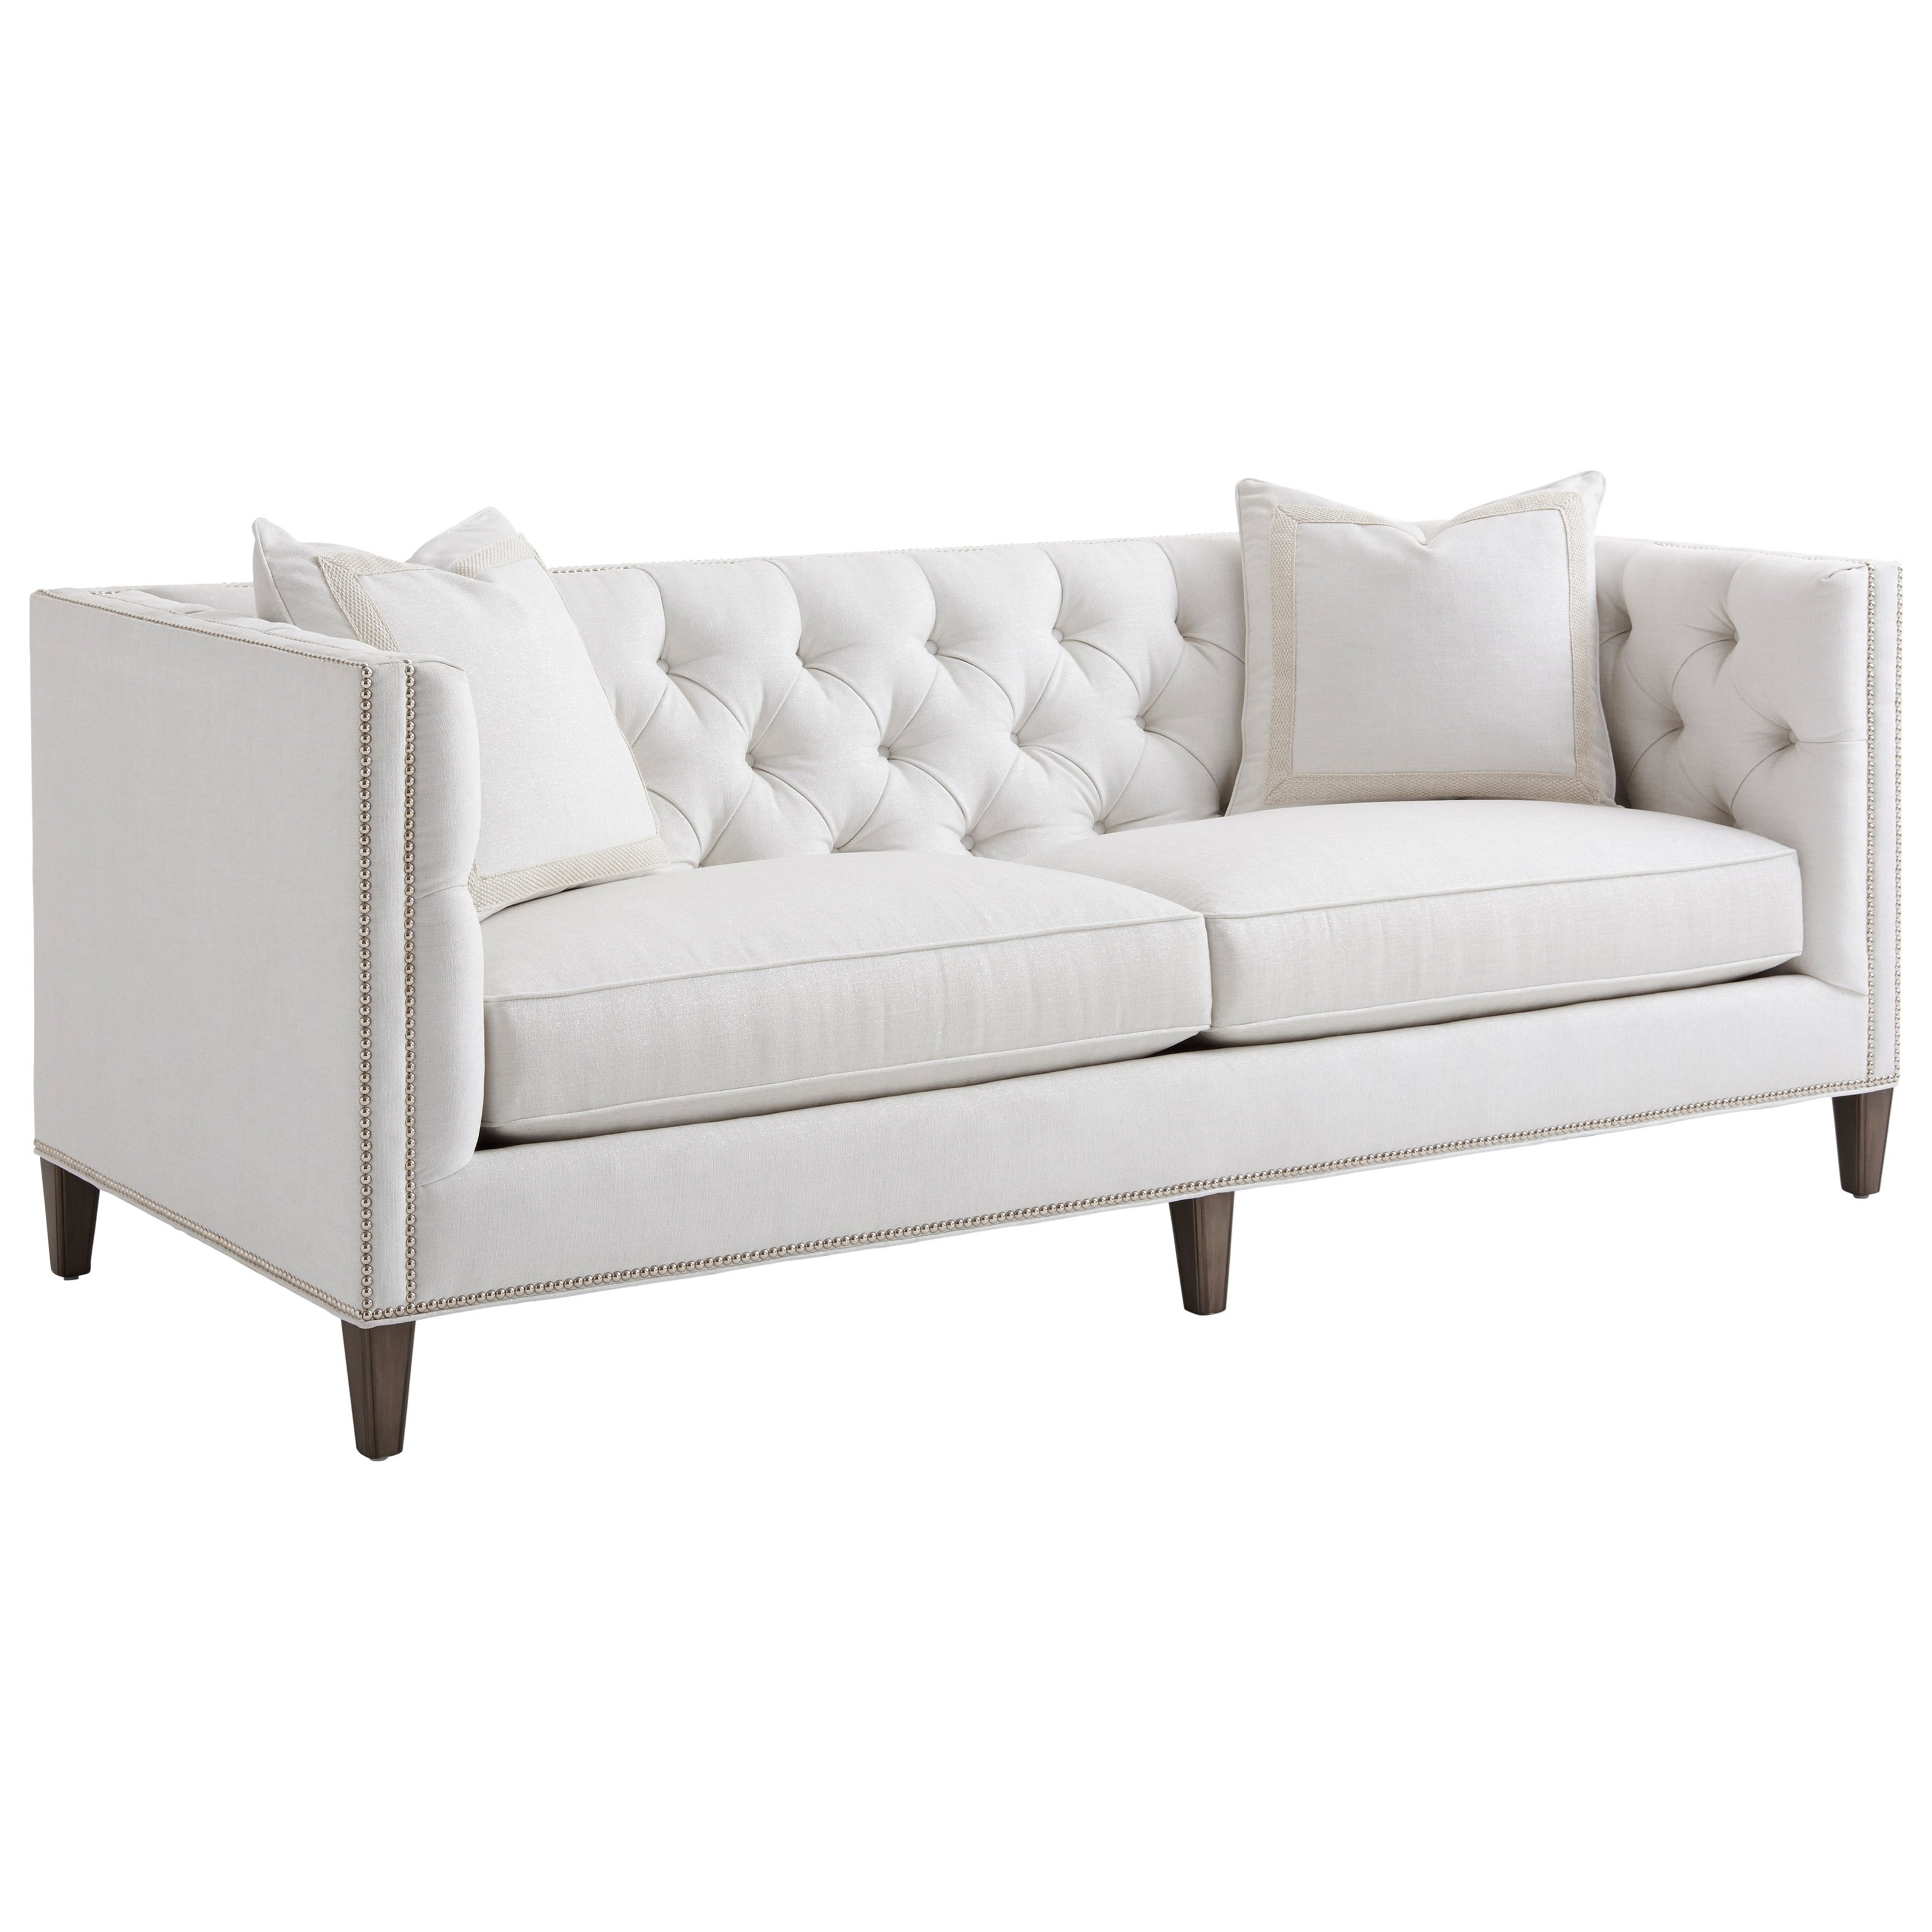 Ariana Camille Sofa by Lexington at Baer's Furniture